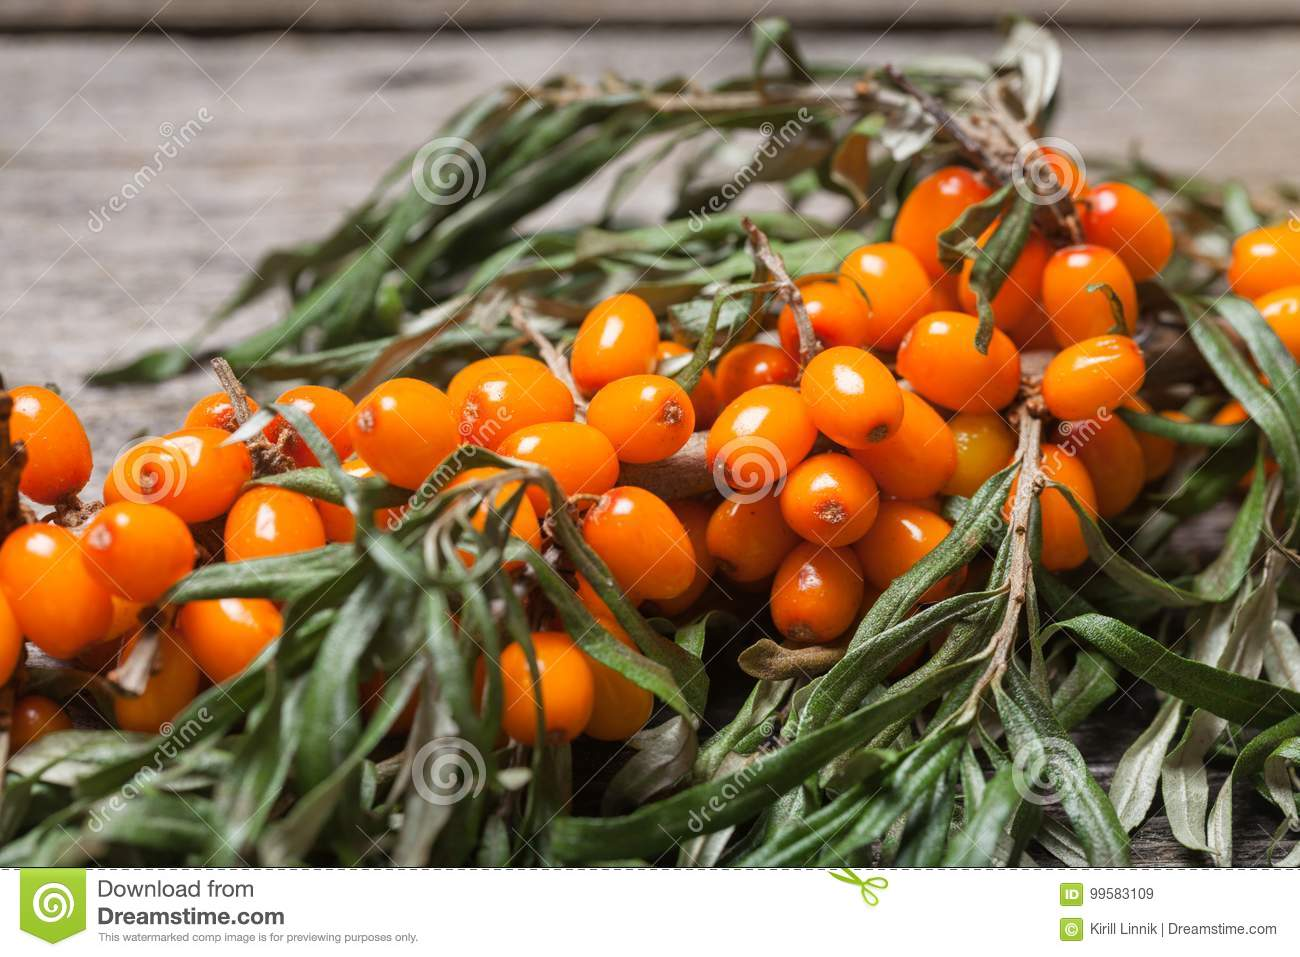 Download Fresh Seabuckthorn On The Table Stock Image - Image of healthy, many: 99583109